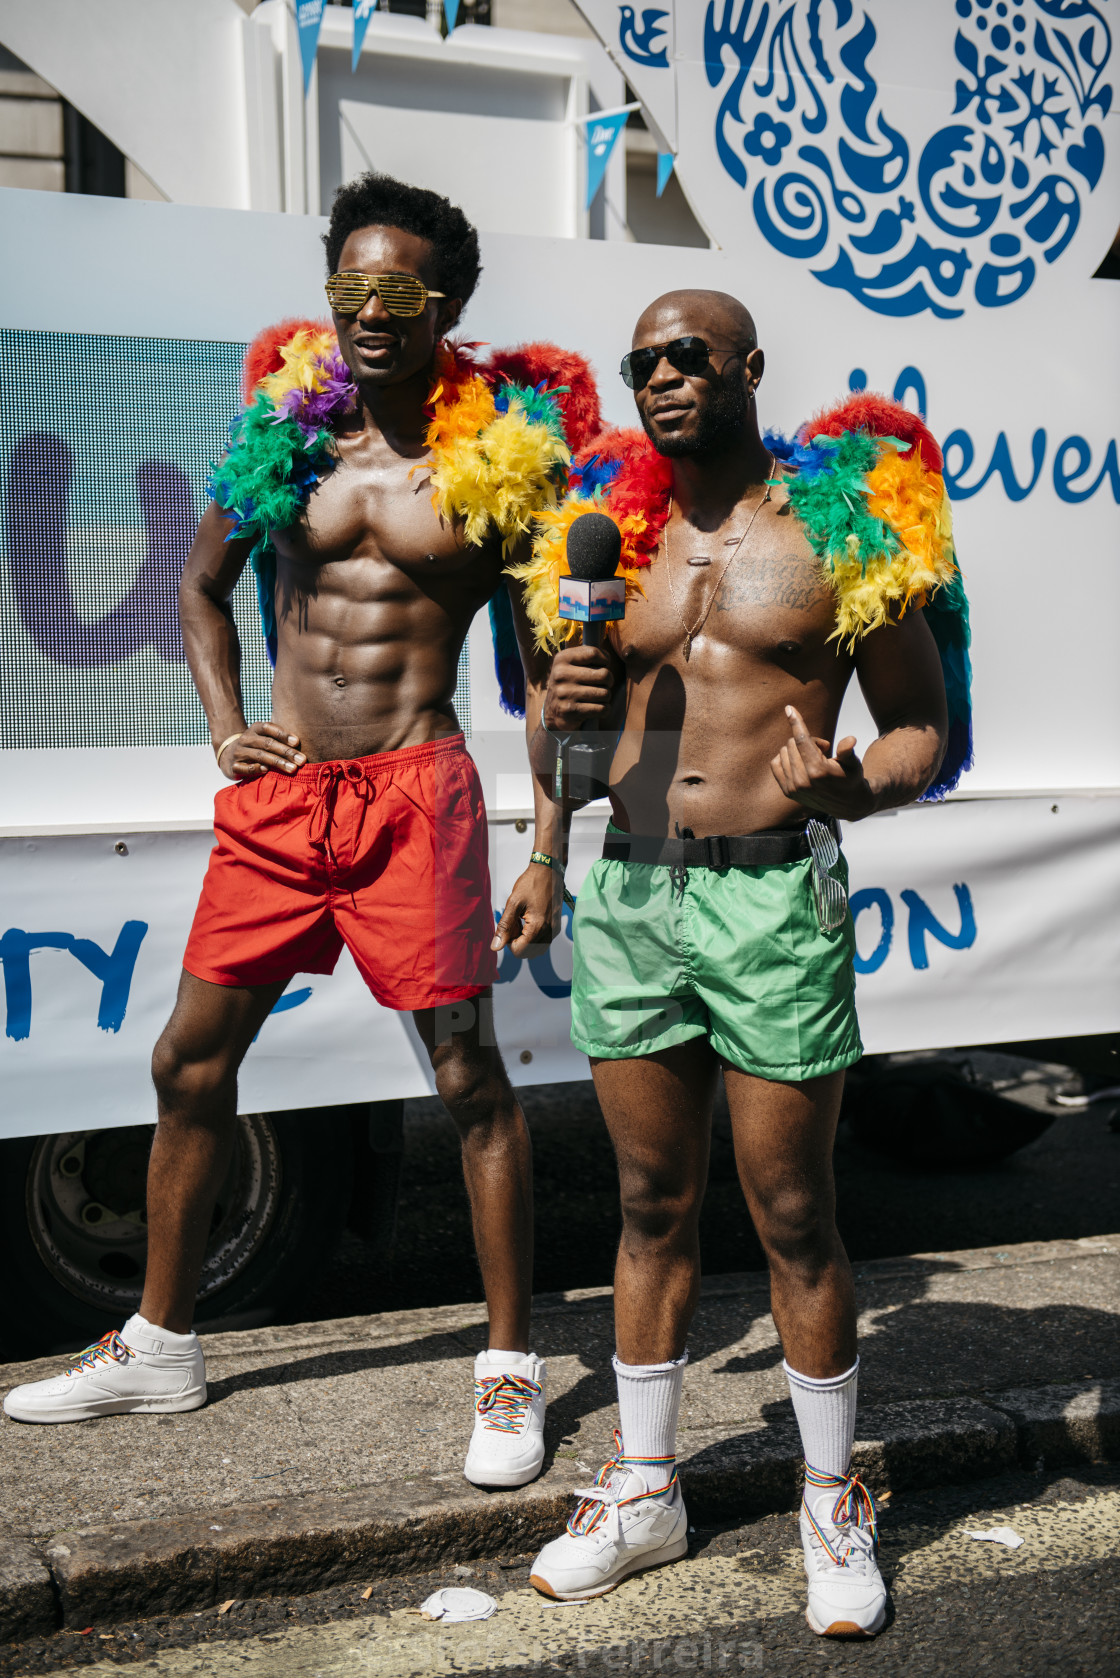 """London Pride '18 [2]"" stock image"